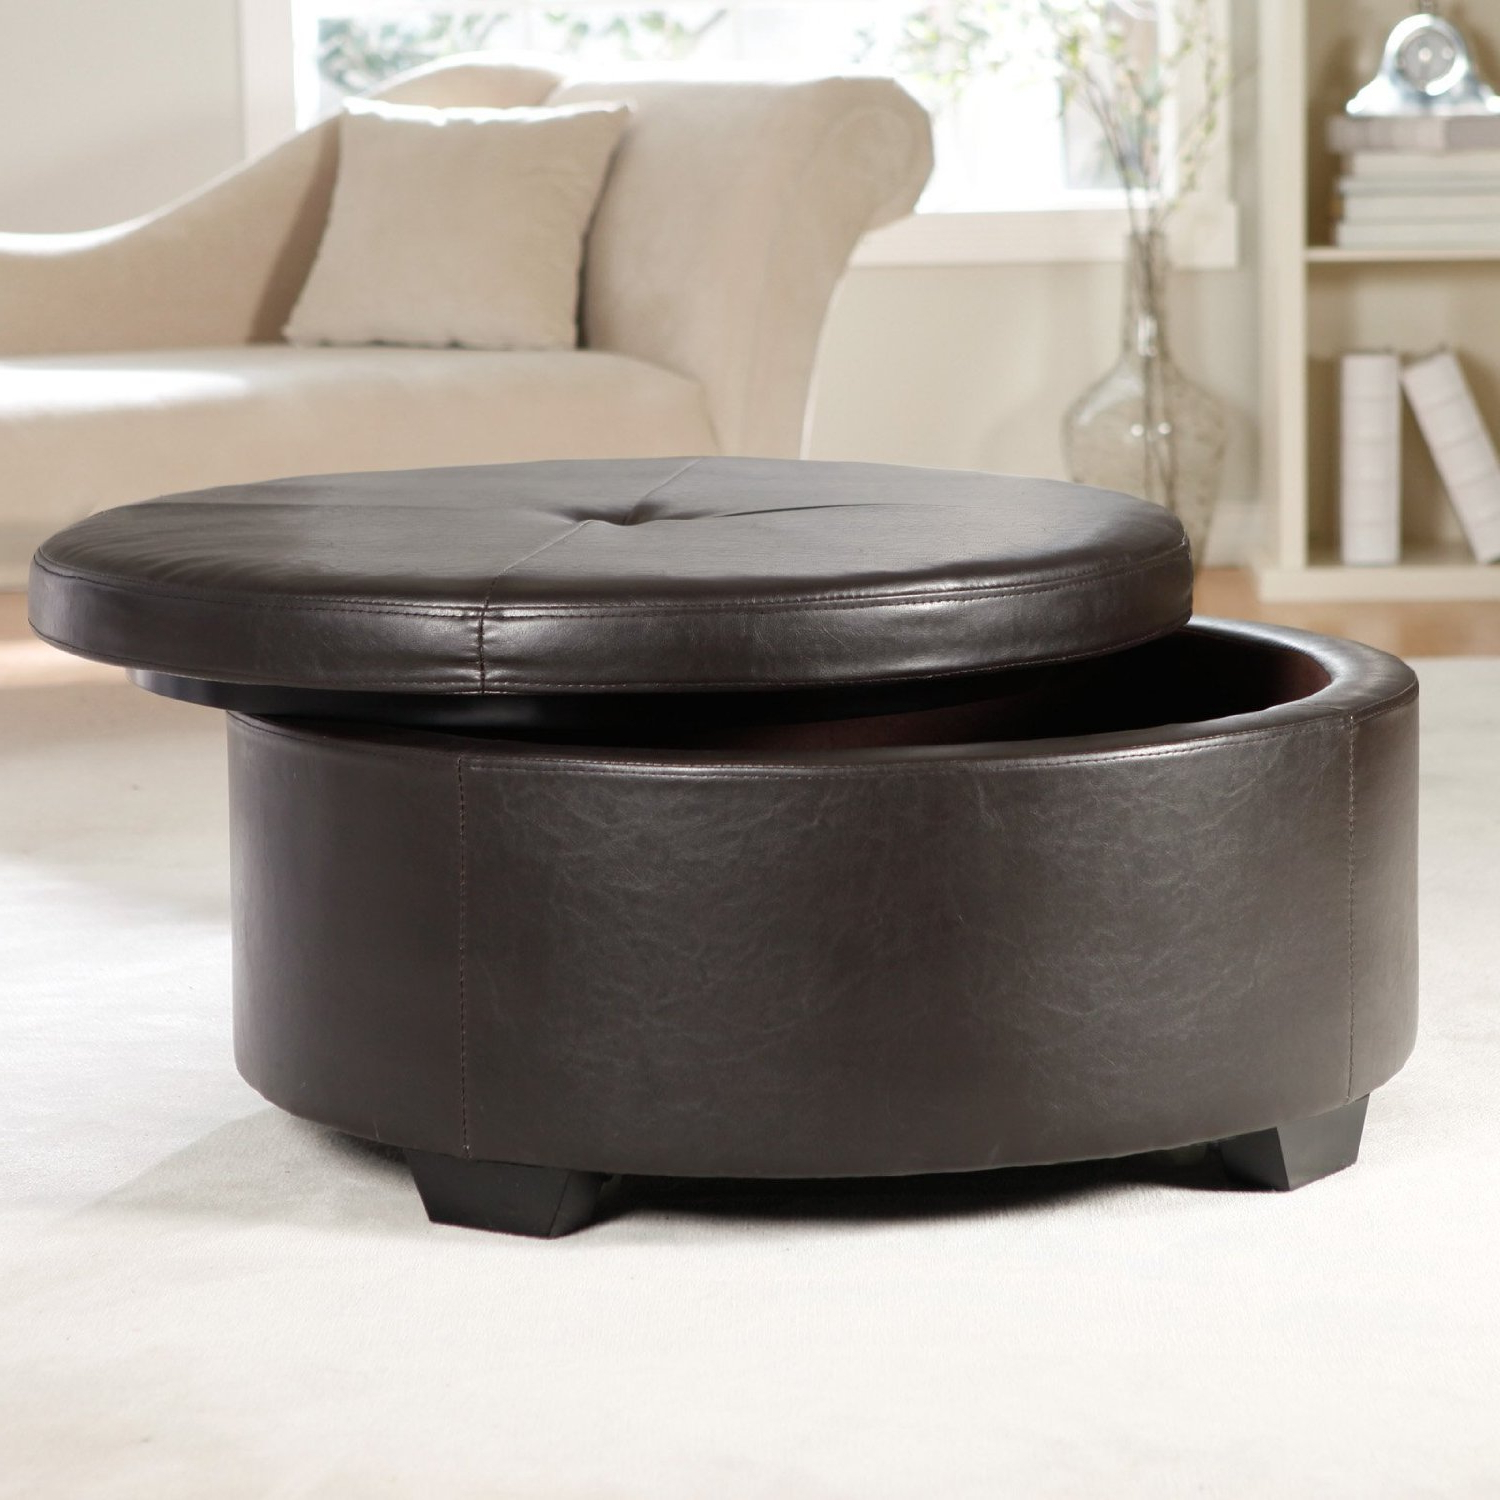 Trendy Round Button Tufted Coffee Tables Inside Coffee Table. Hd Wallpaper Leather Coffee Table: Simple Round (Gallery 15 of 20)